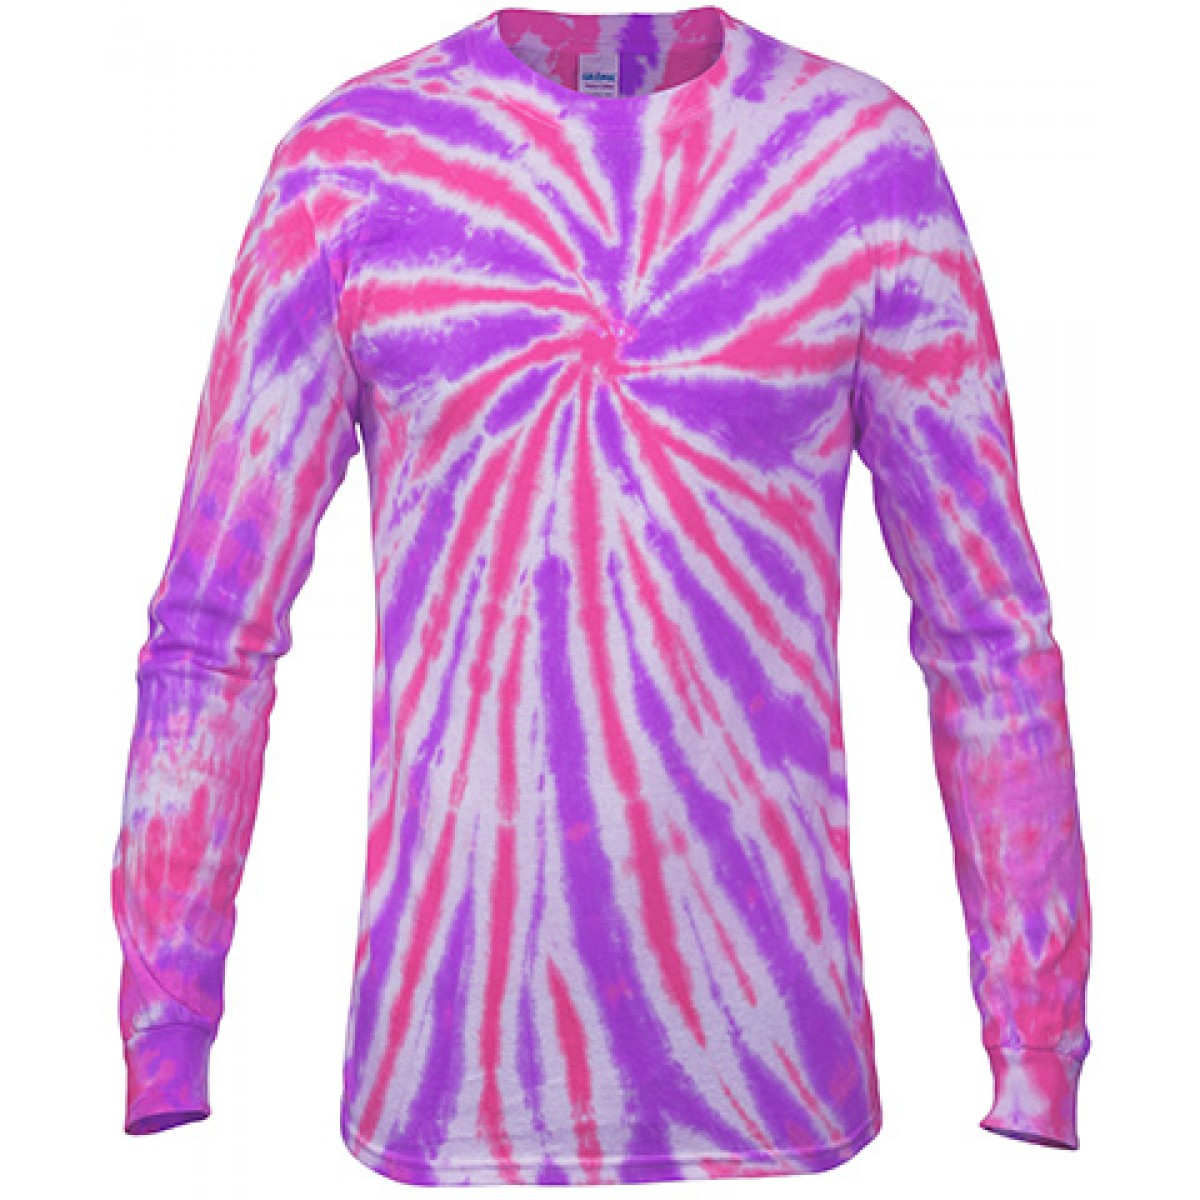 Multi Color Tie-Dye Long Sleeve Shirt -Purple-3XL